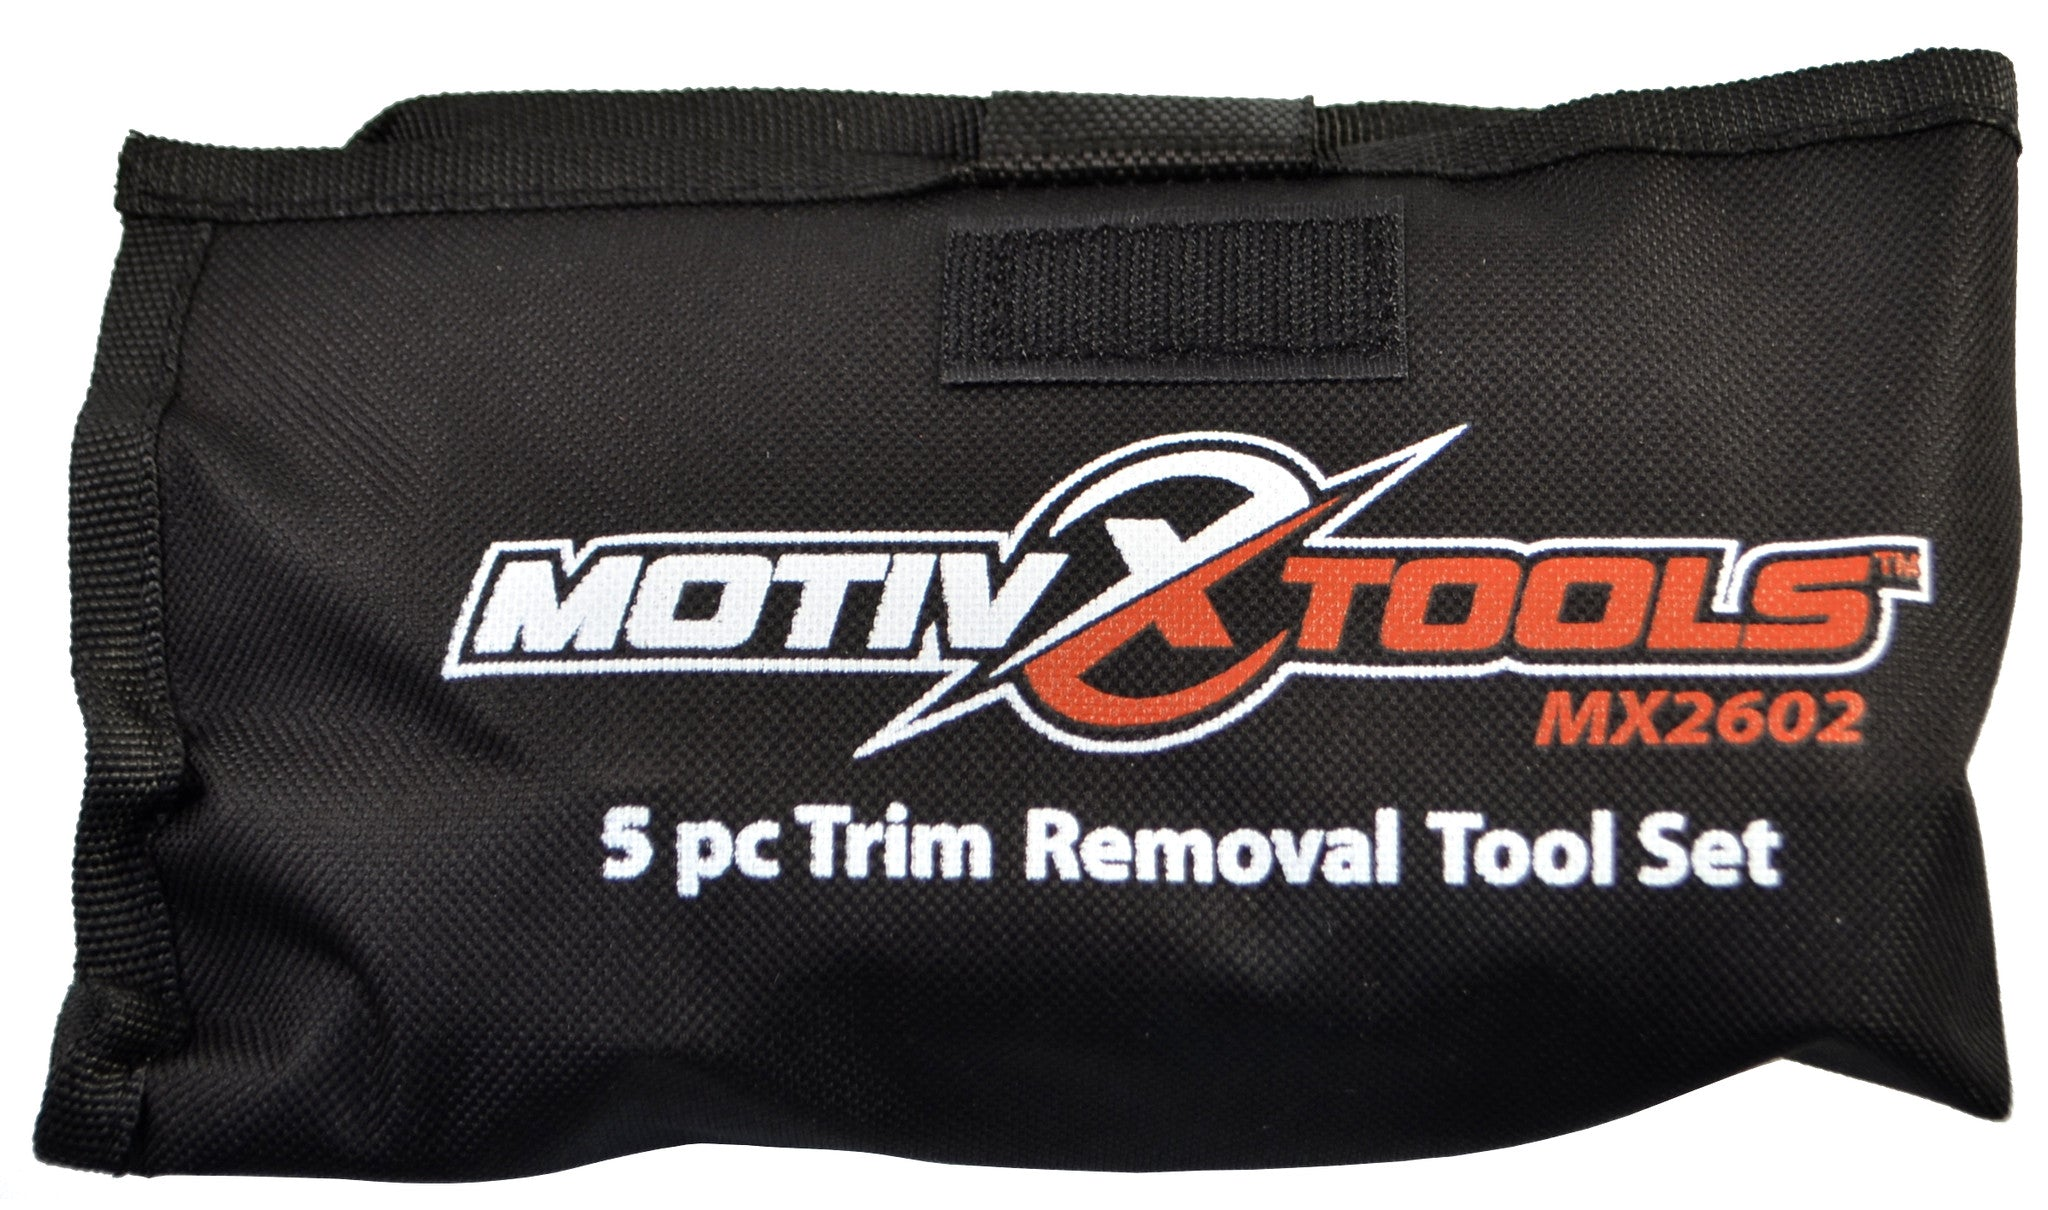 MX2602 5pc Trim and Panel Removal Tool Set Case